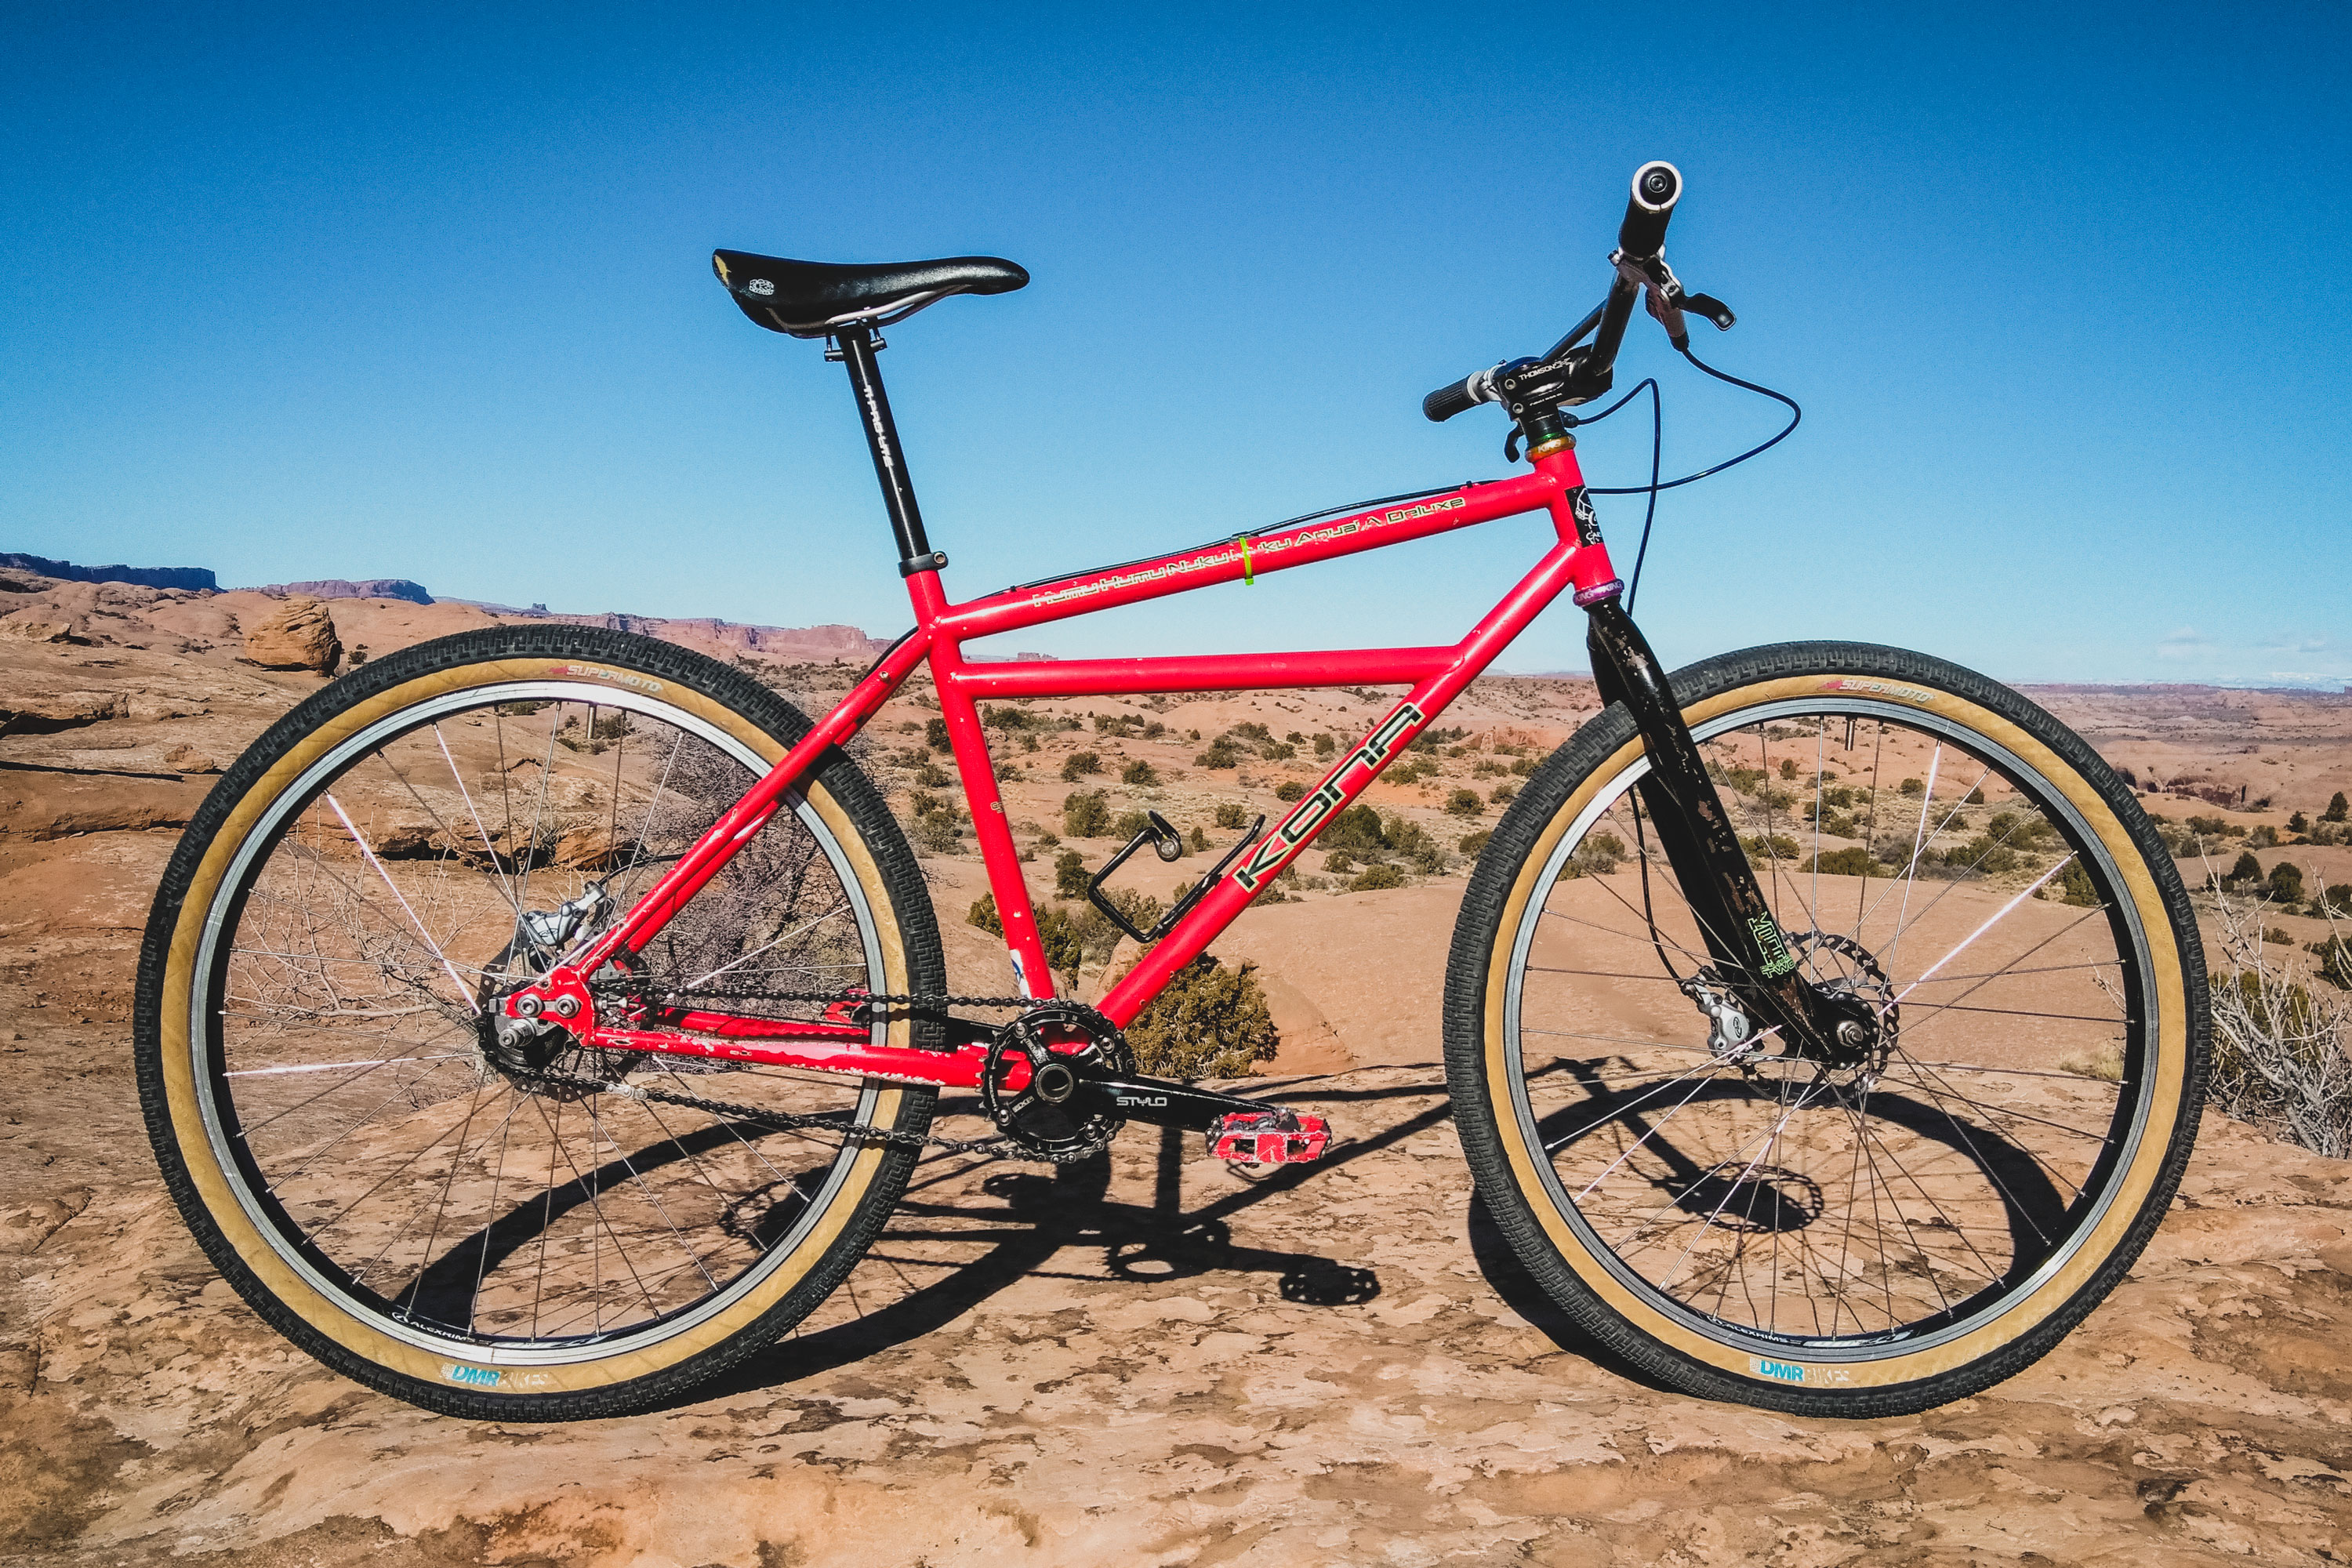 Kona Dream Builds: Jarrod's Well Loved Humu Humu Nuku Nuku Apua'A Deluxe Has Seen Things